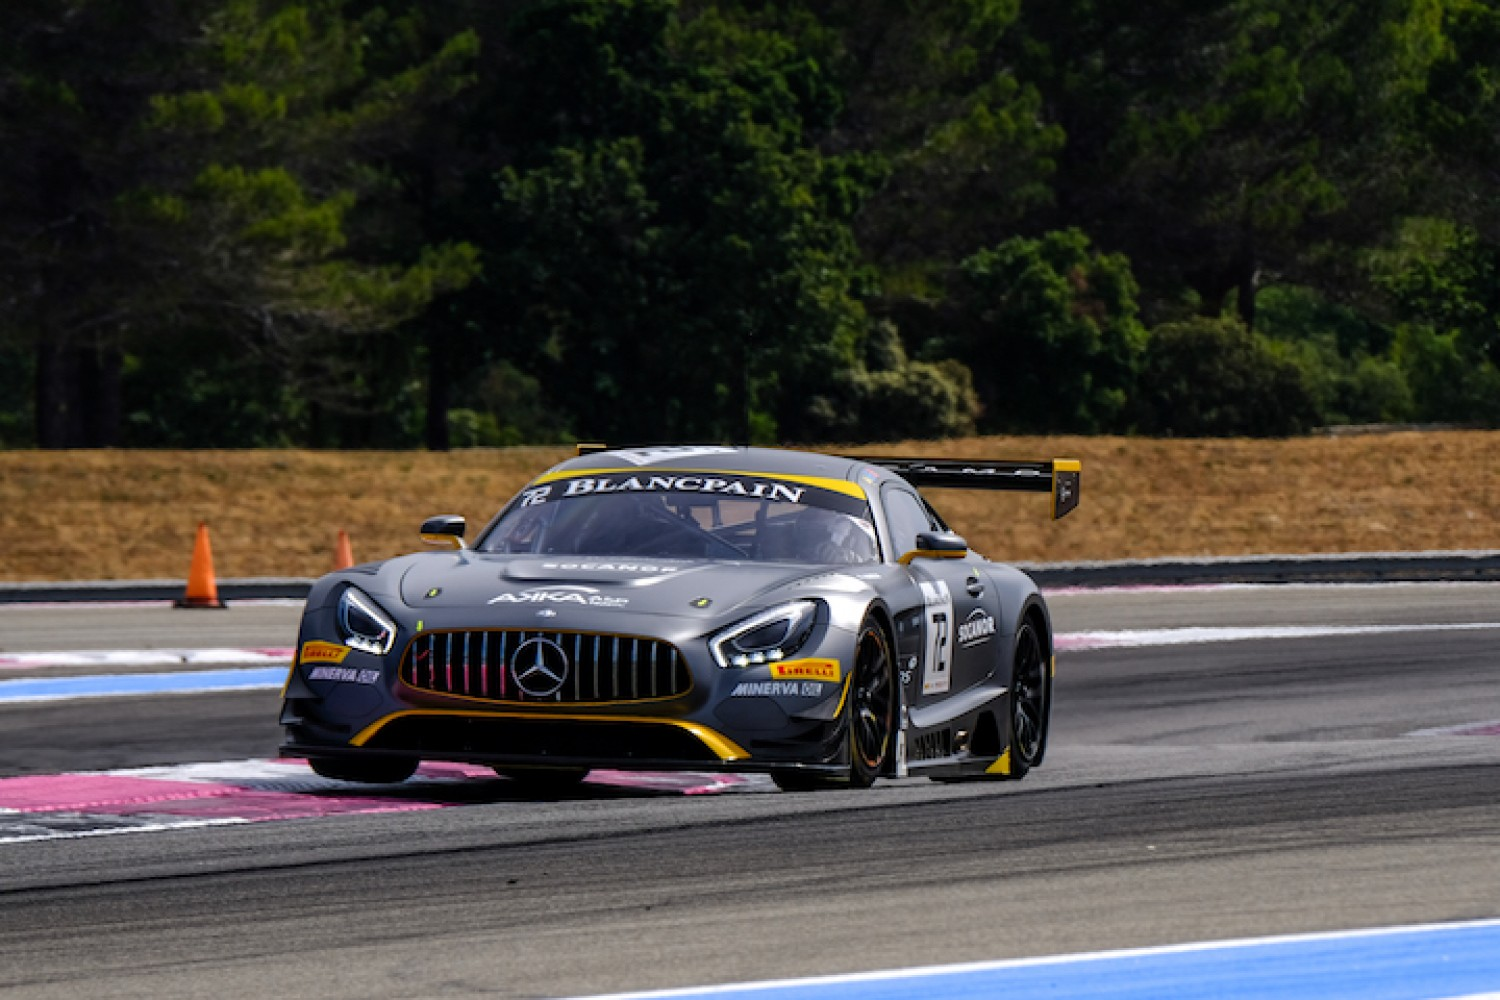 BLANCPAIN GT SPORTS CLUB : OVERALL POINTS LEADER PONS LOOKING TO EXTEND WINNING MOMENTUM